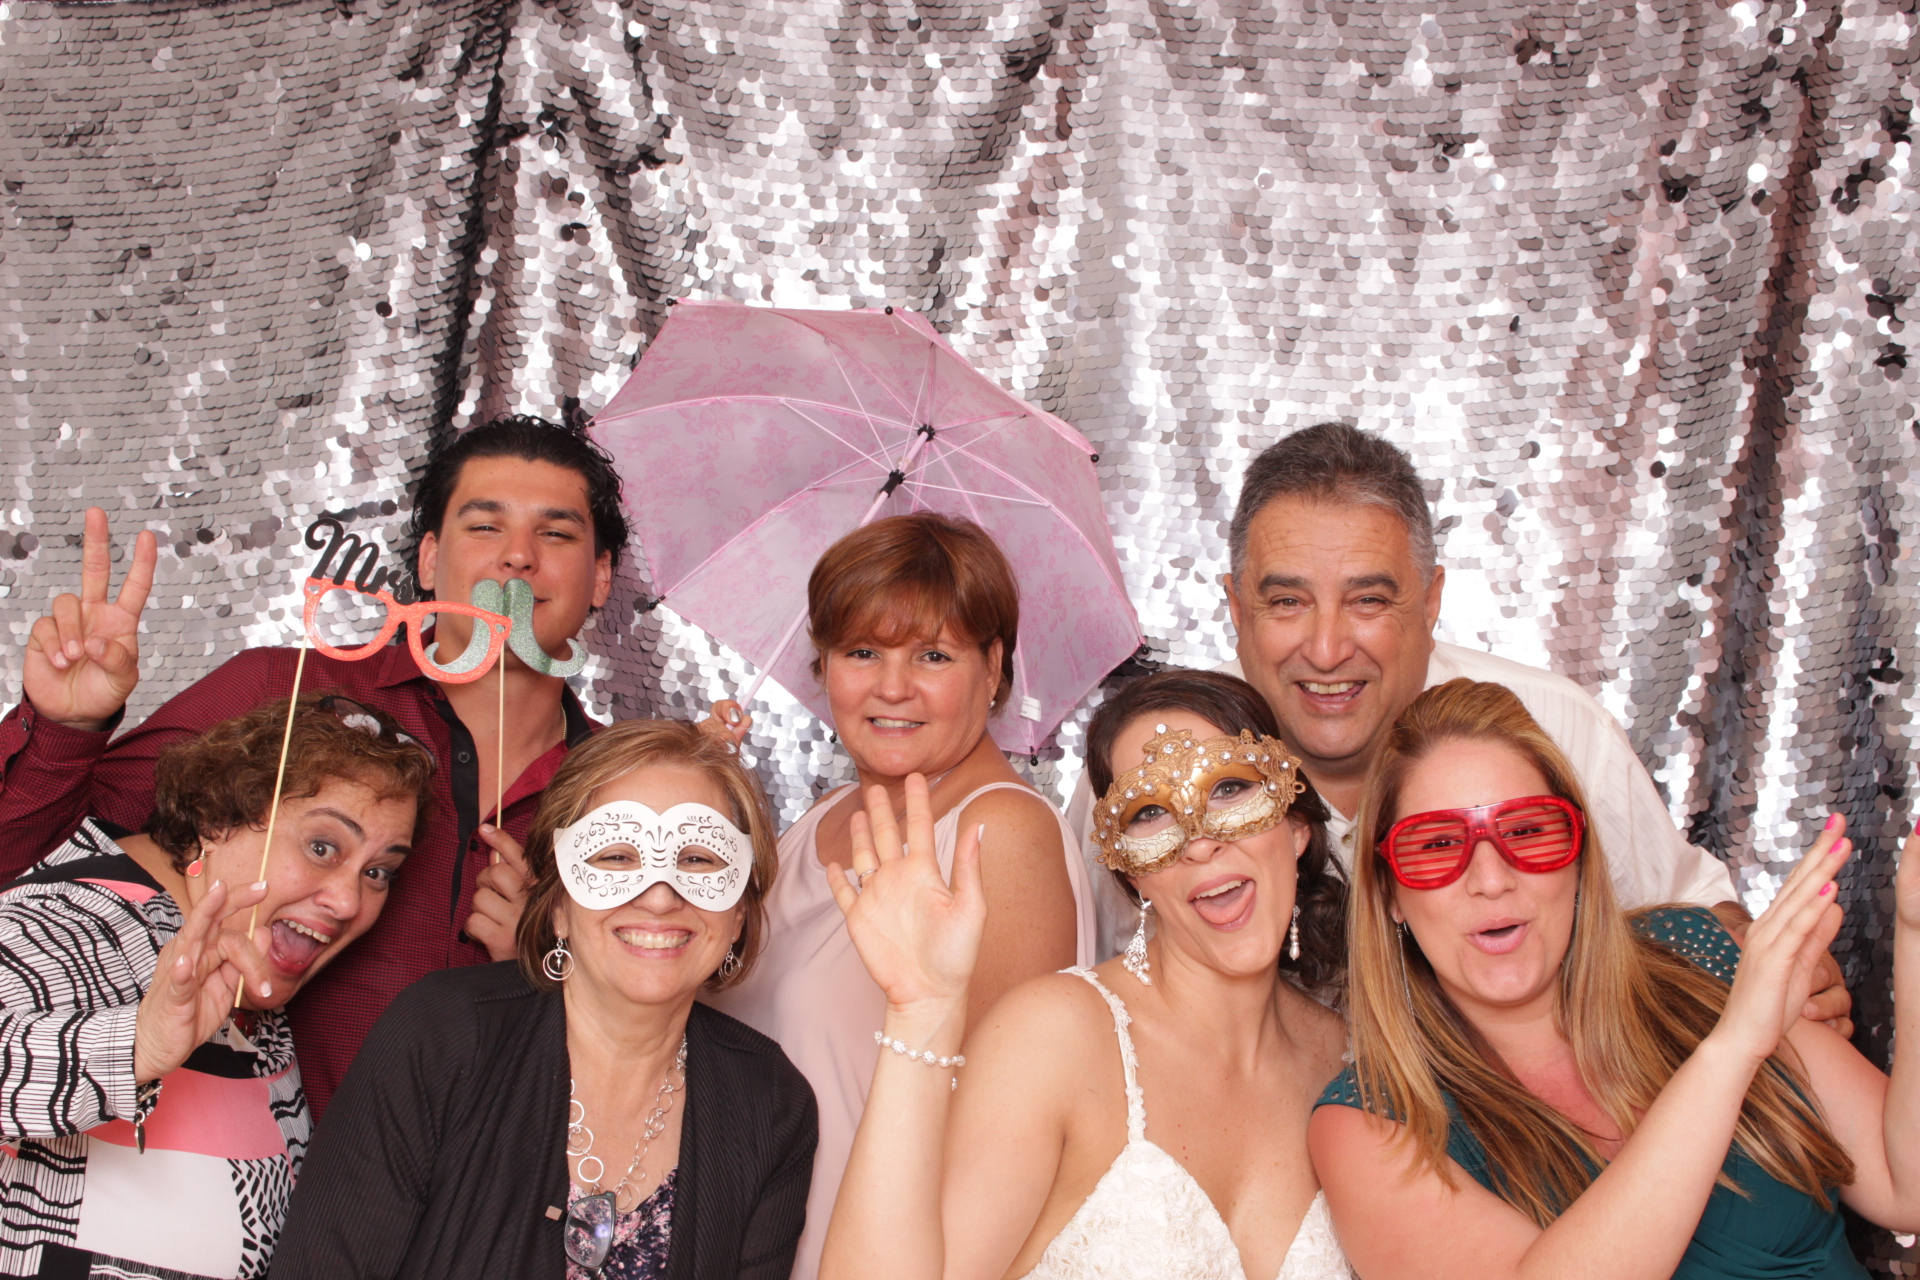 yesi-raul-wedding-photobooth-200.JPG